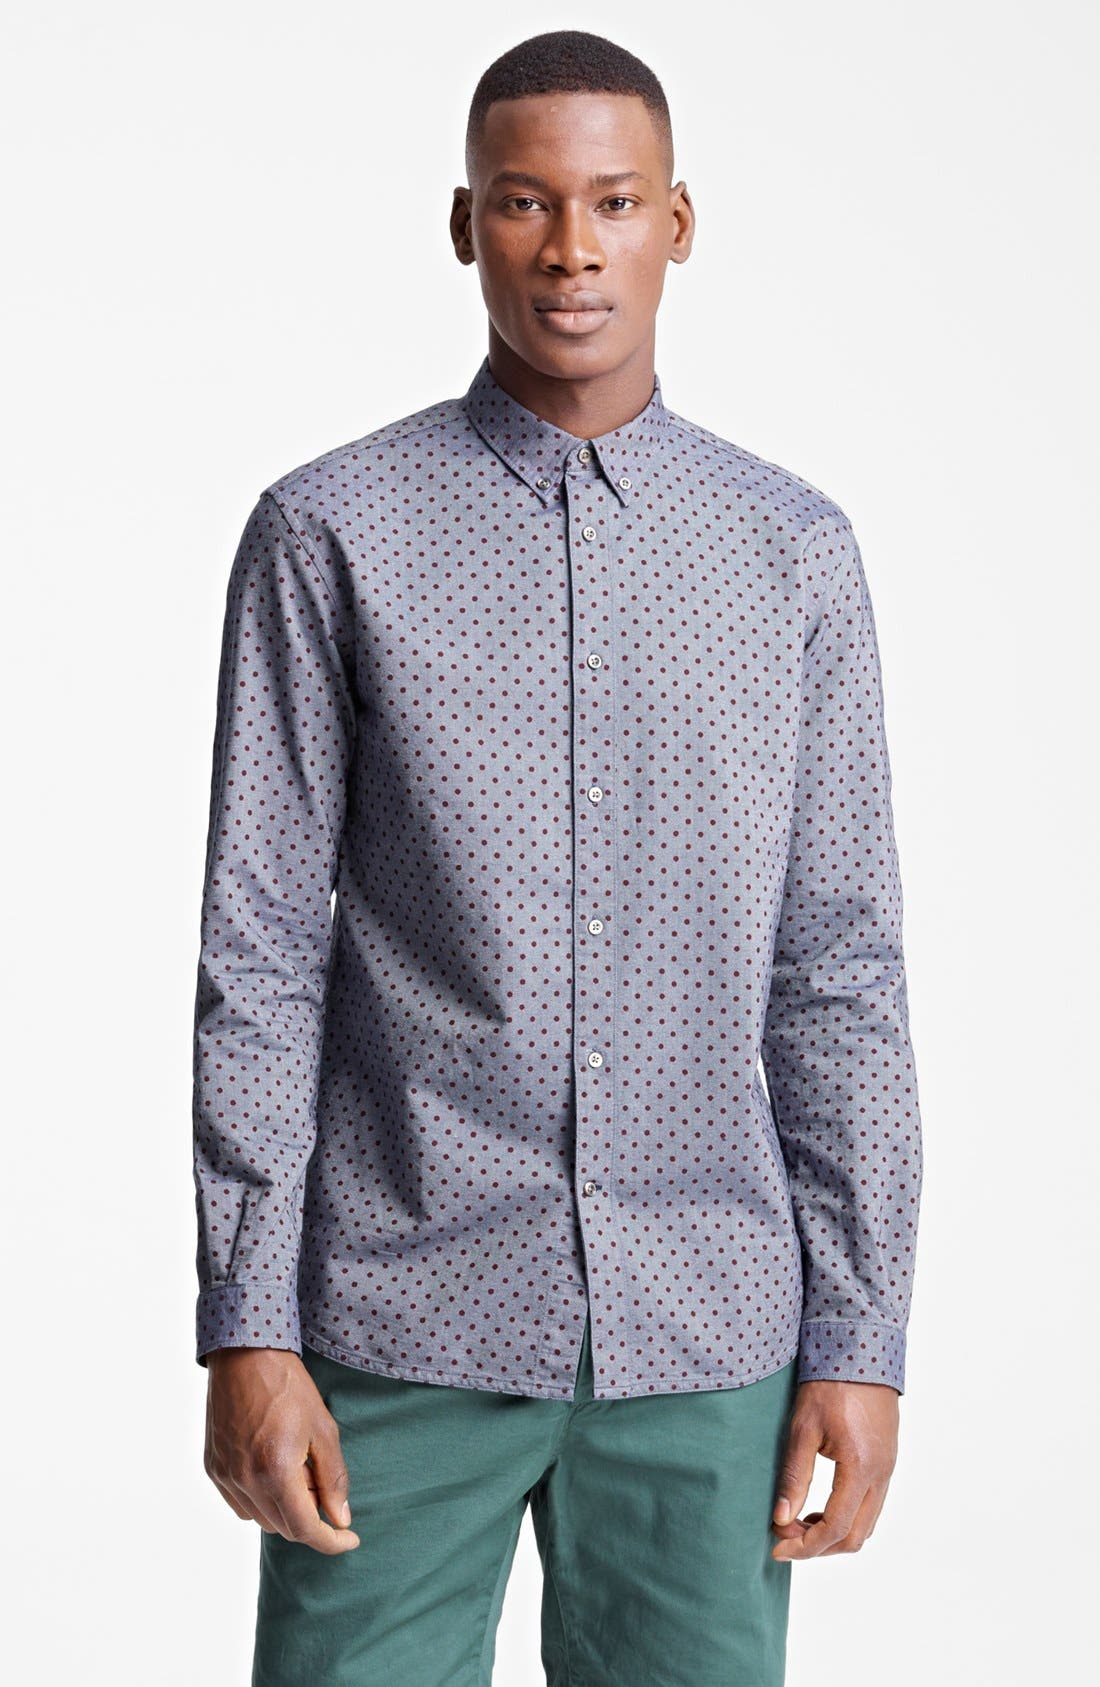 Alternate Image 1 Selected - Paul Smith Jeans Tailored Fit Dot Print Sport Shirt